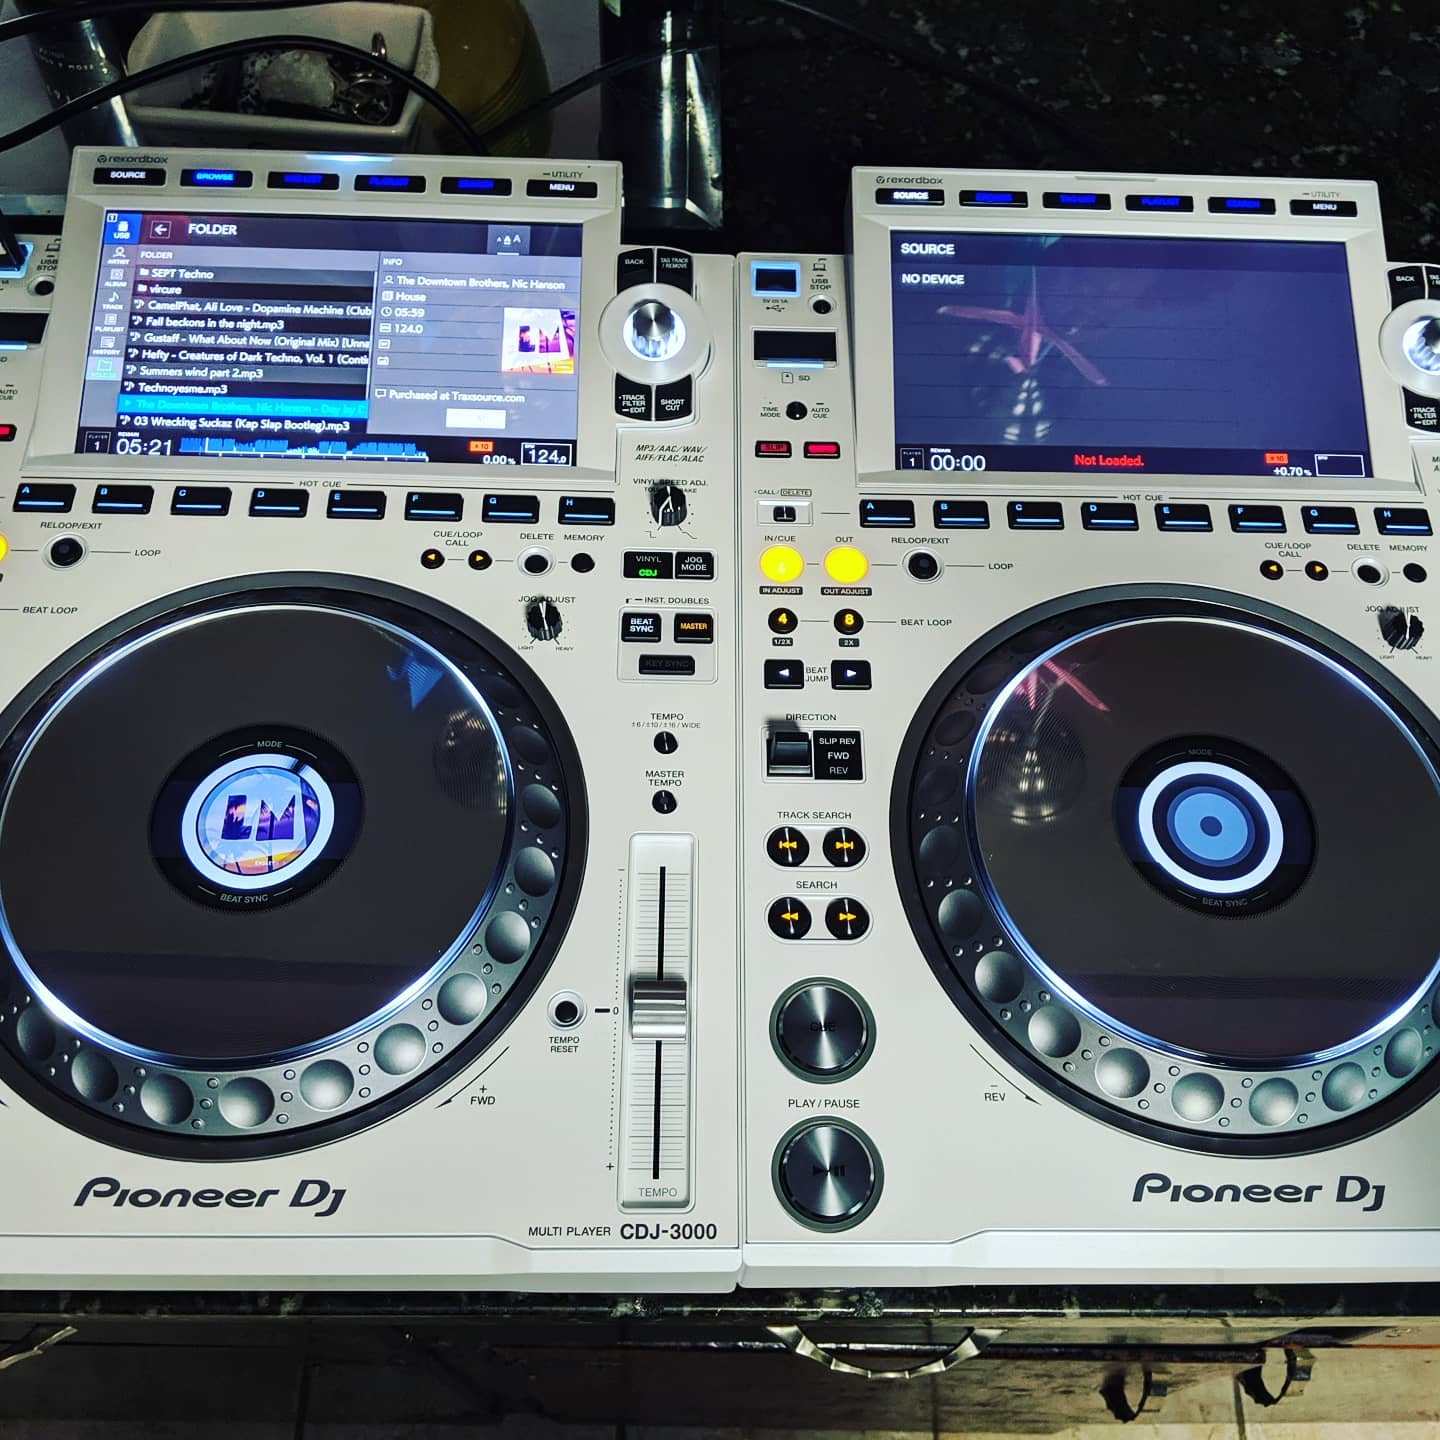 We got the New pioneer cdj3000s in white